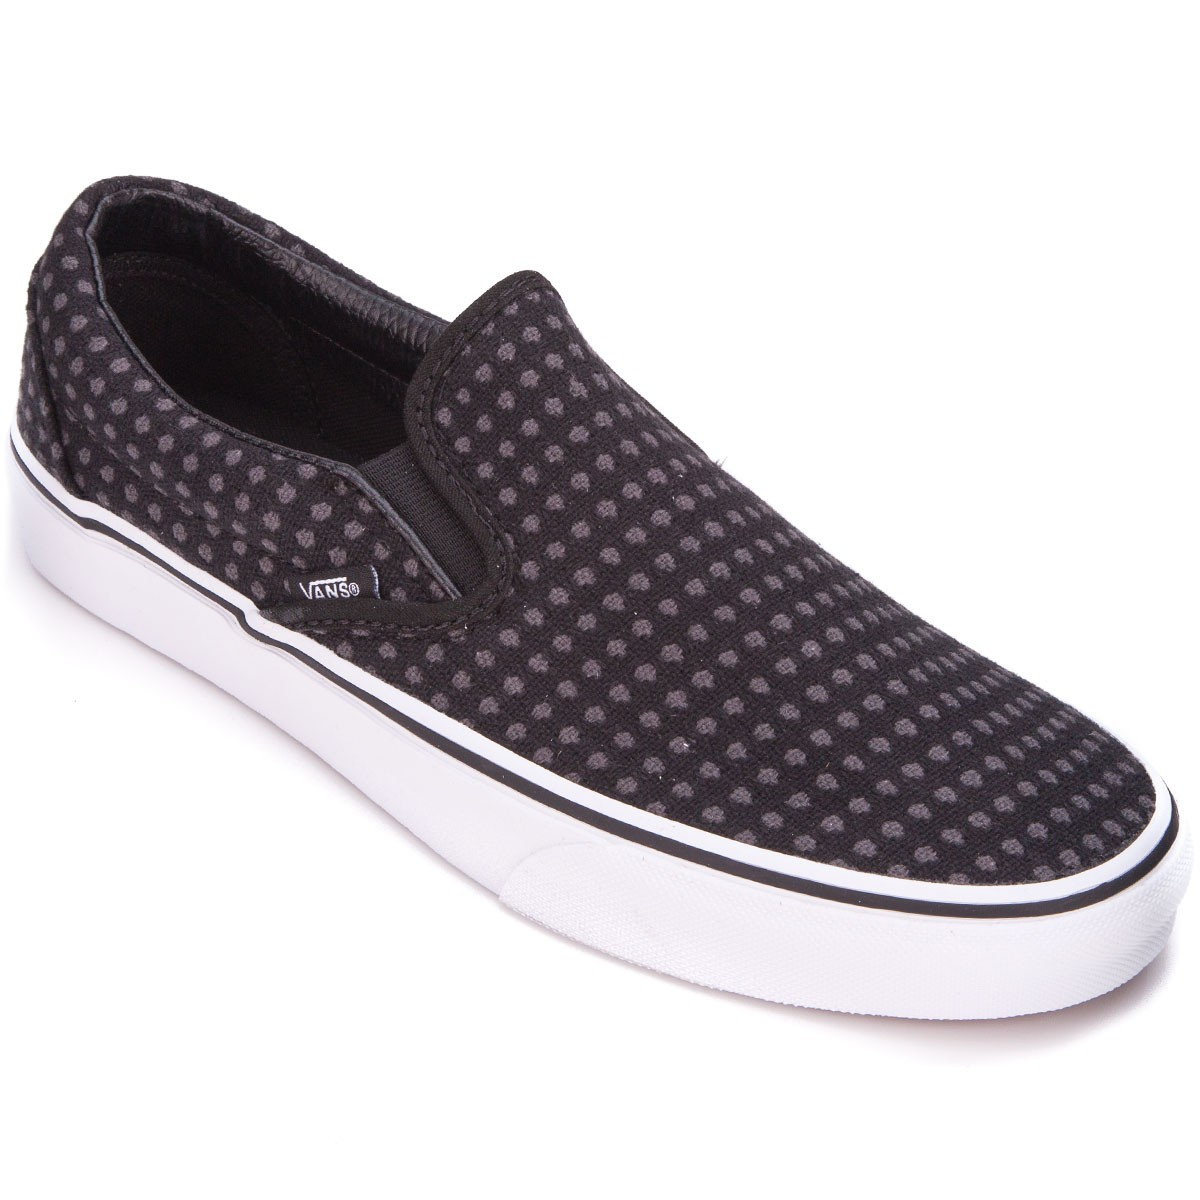 vans classic slip on womens shoes. Black Bedroom Furniture Sets. Home Design Ideas